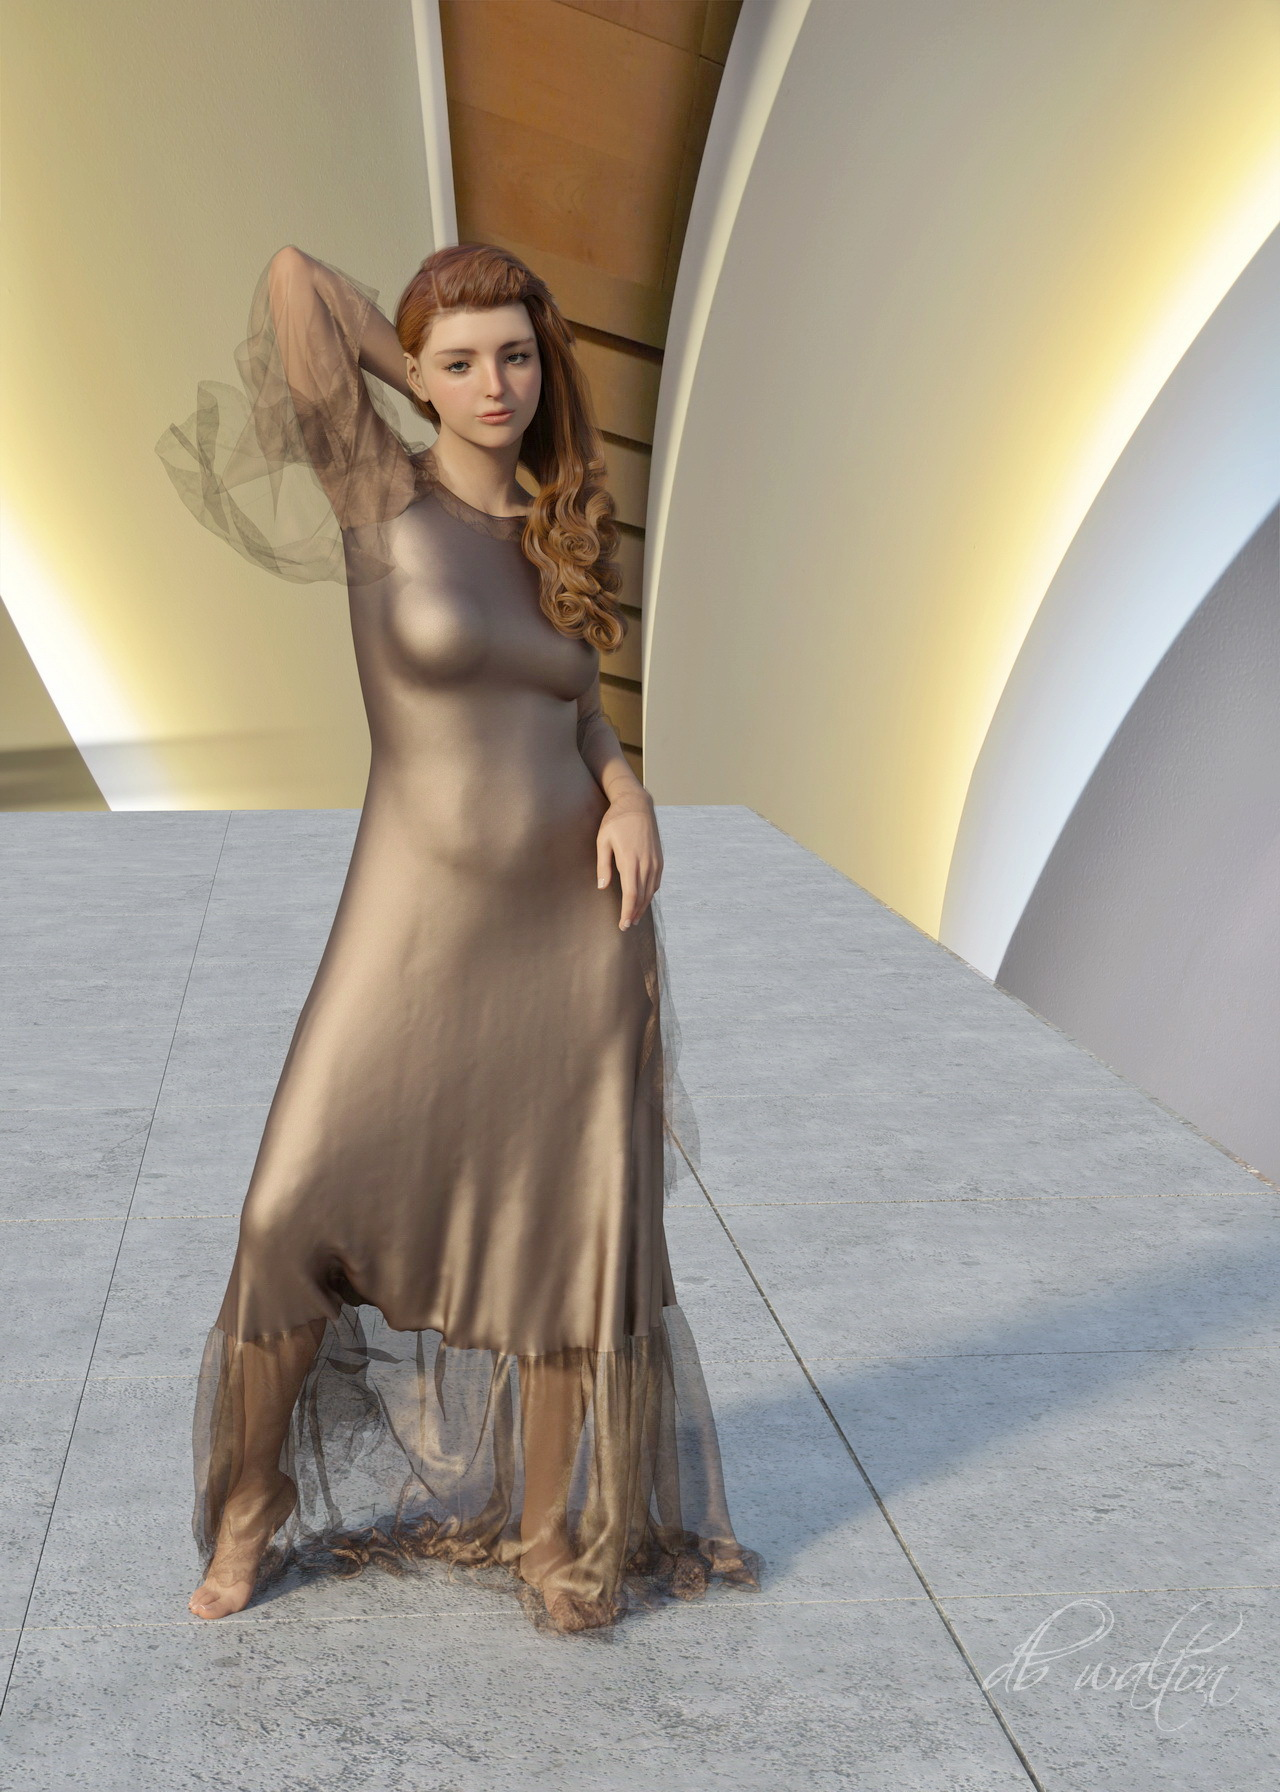 New Character 4075 - My New Dress